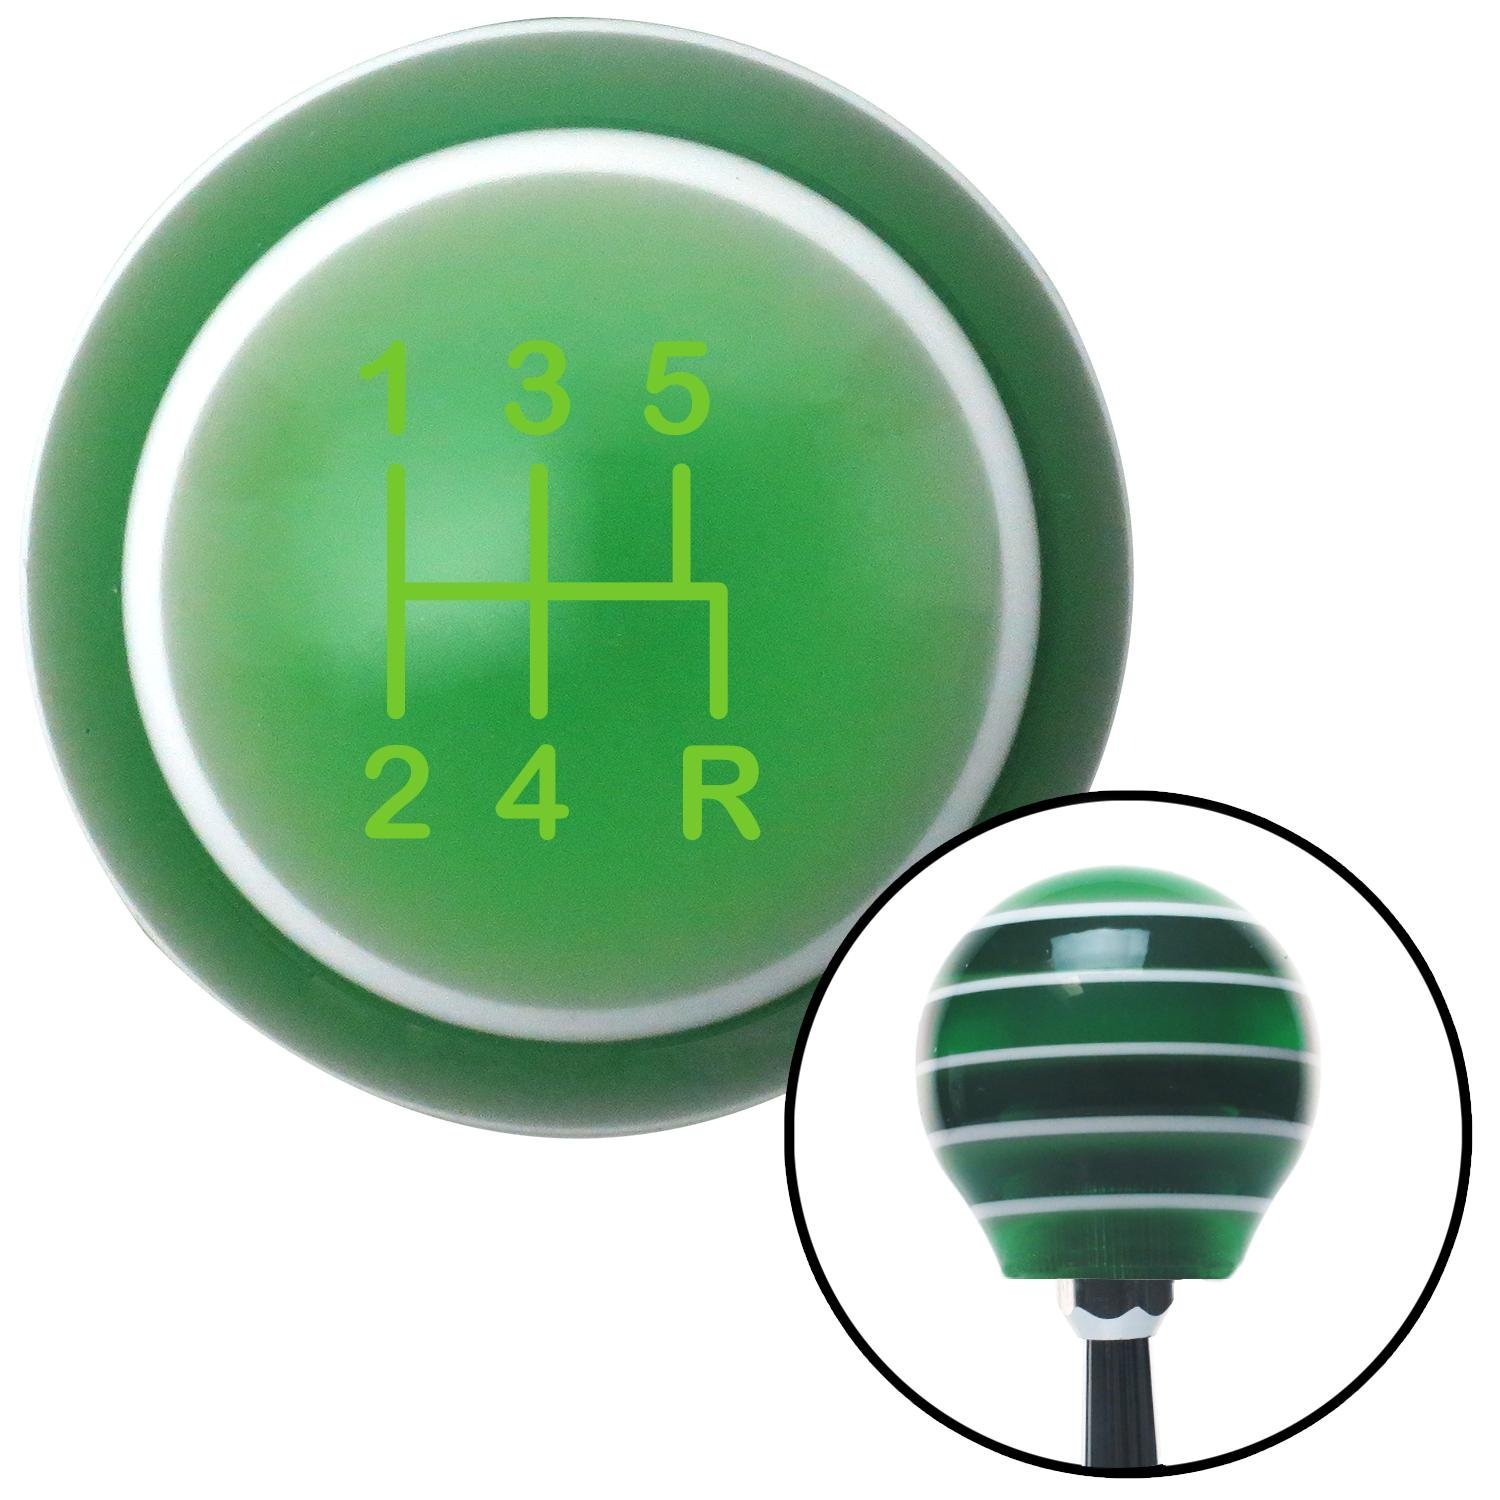 American Shifter 126889 Green Stripe Shift Knob with M16 x 1.5 Insert Green Shift Pattern 15n